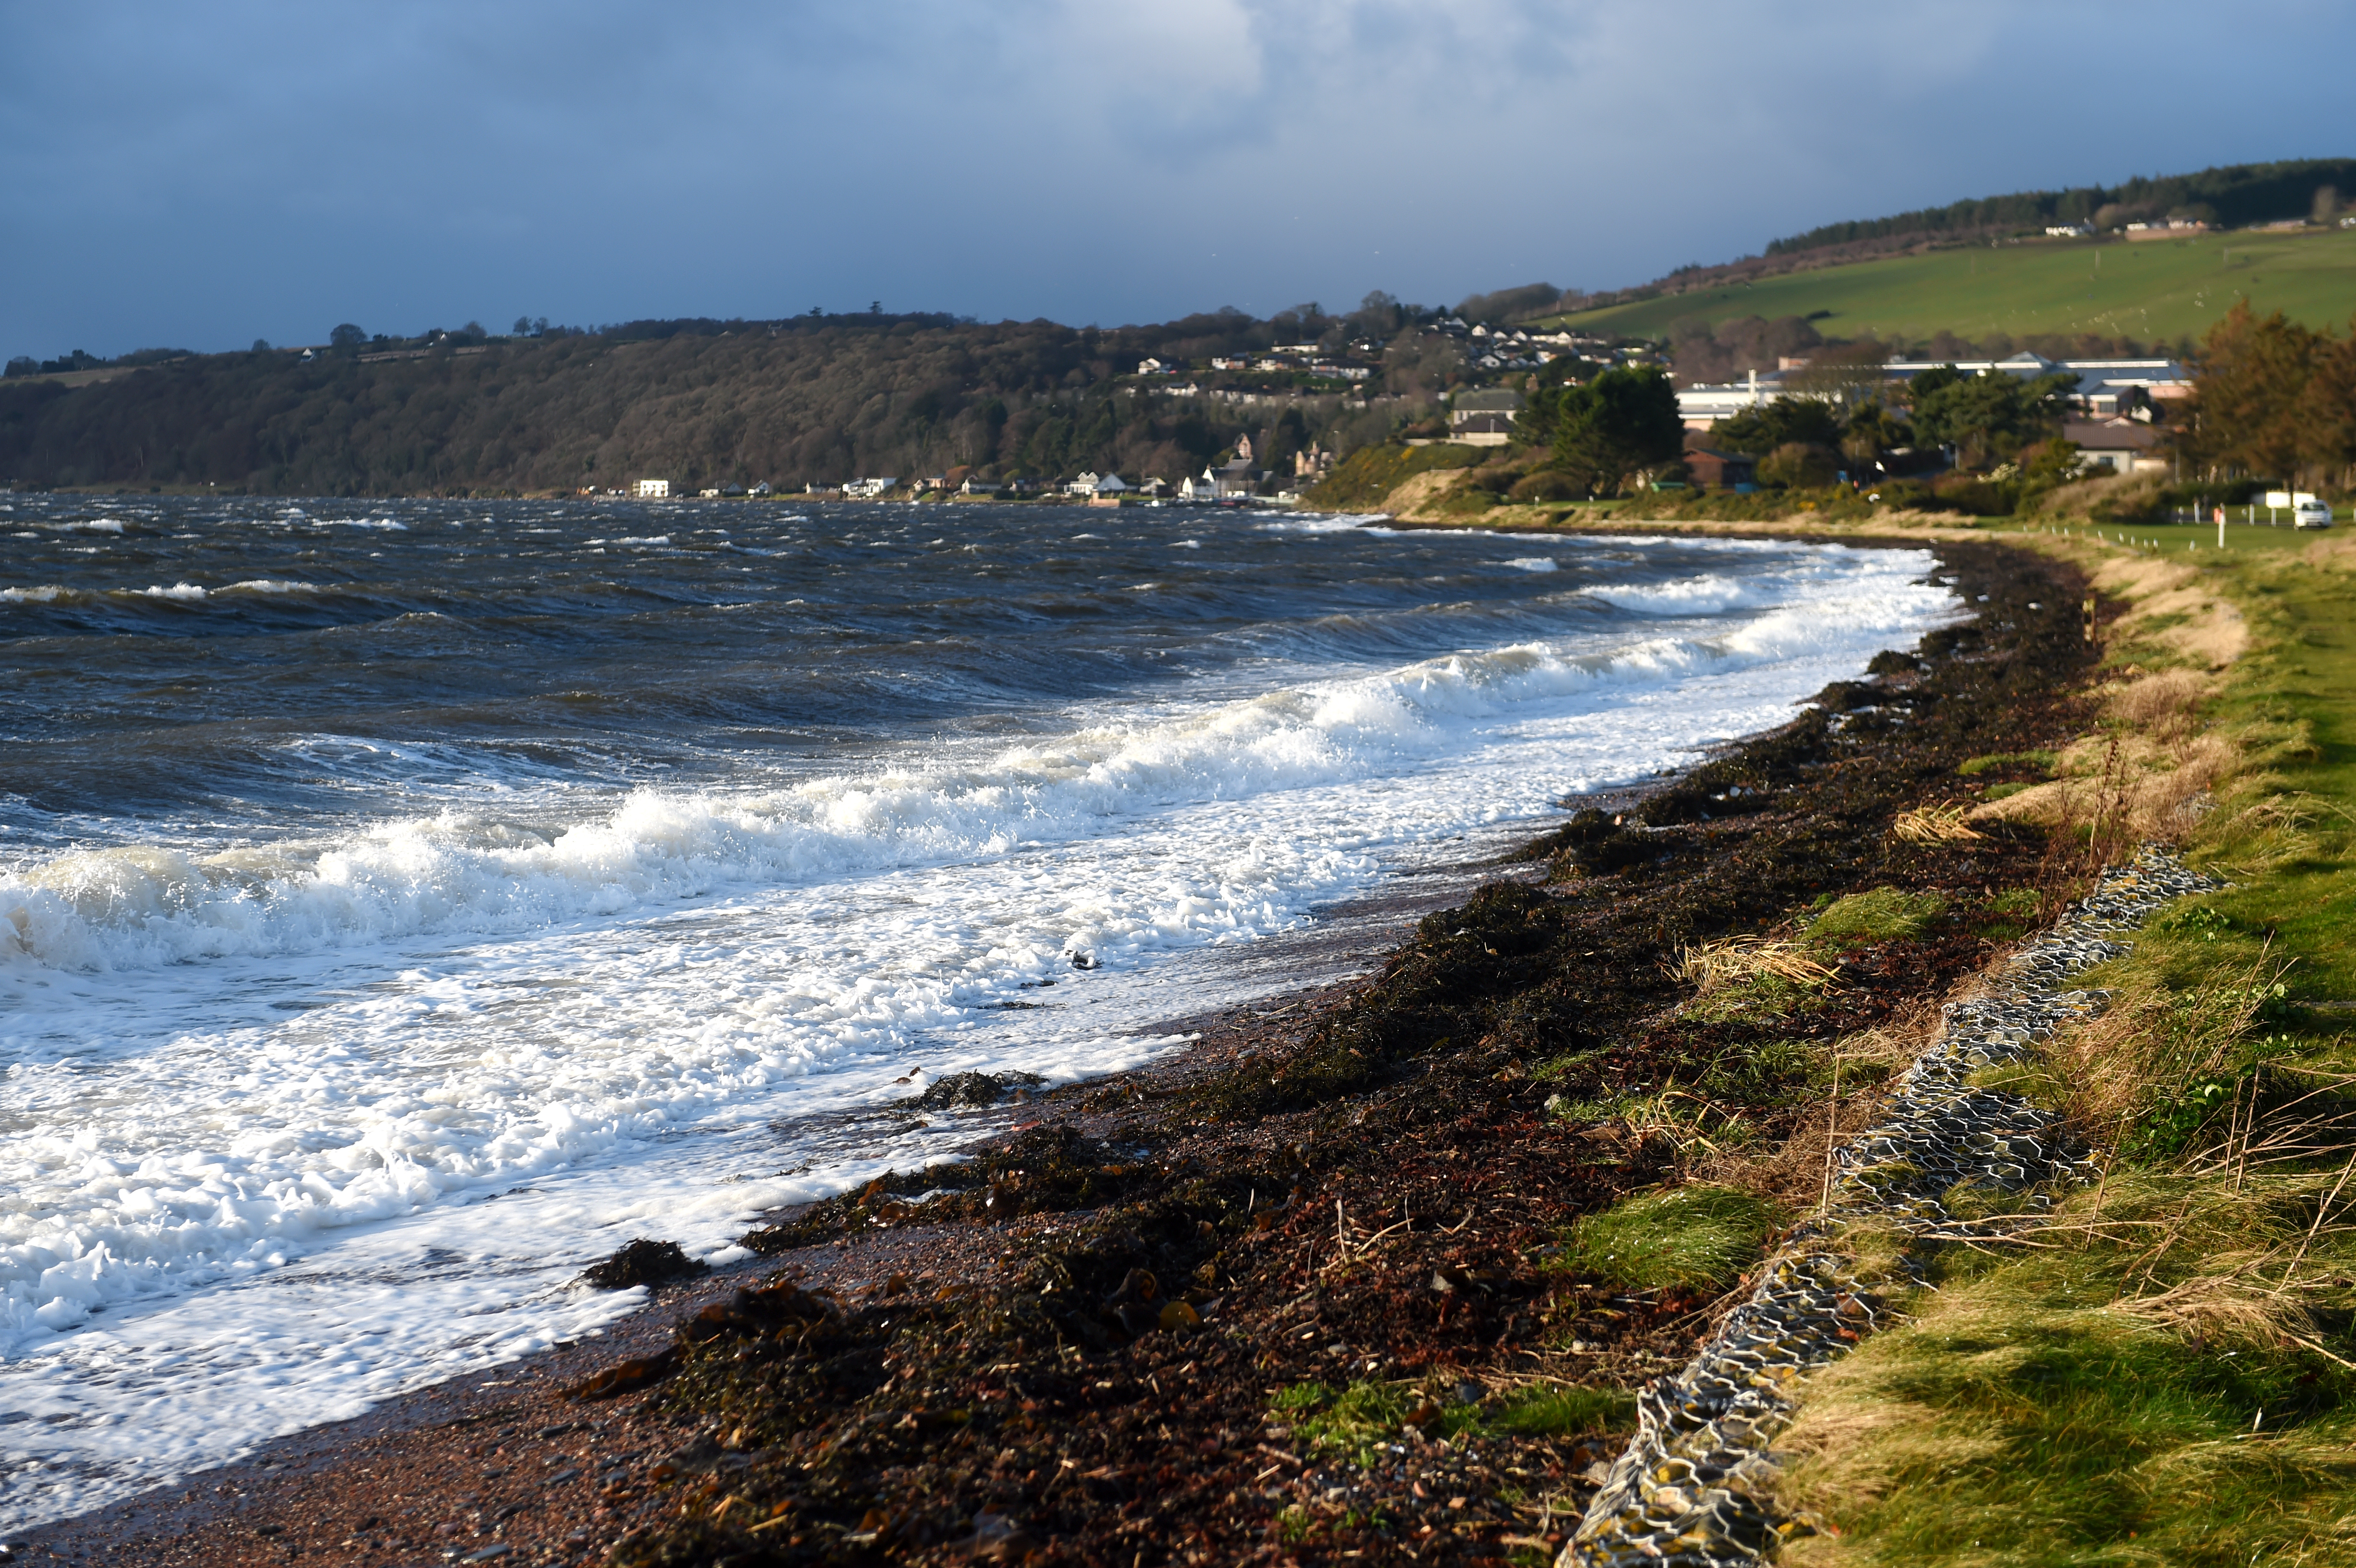 Stormy seas with a strong south west gale batter the shoreline  of the Inverness Firth at Fortrose on the Black Isle.